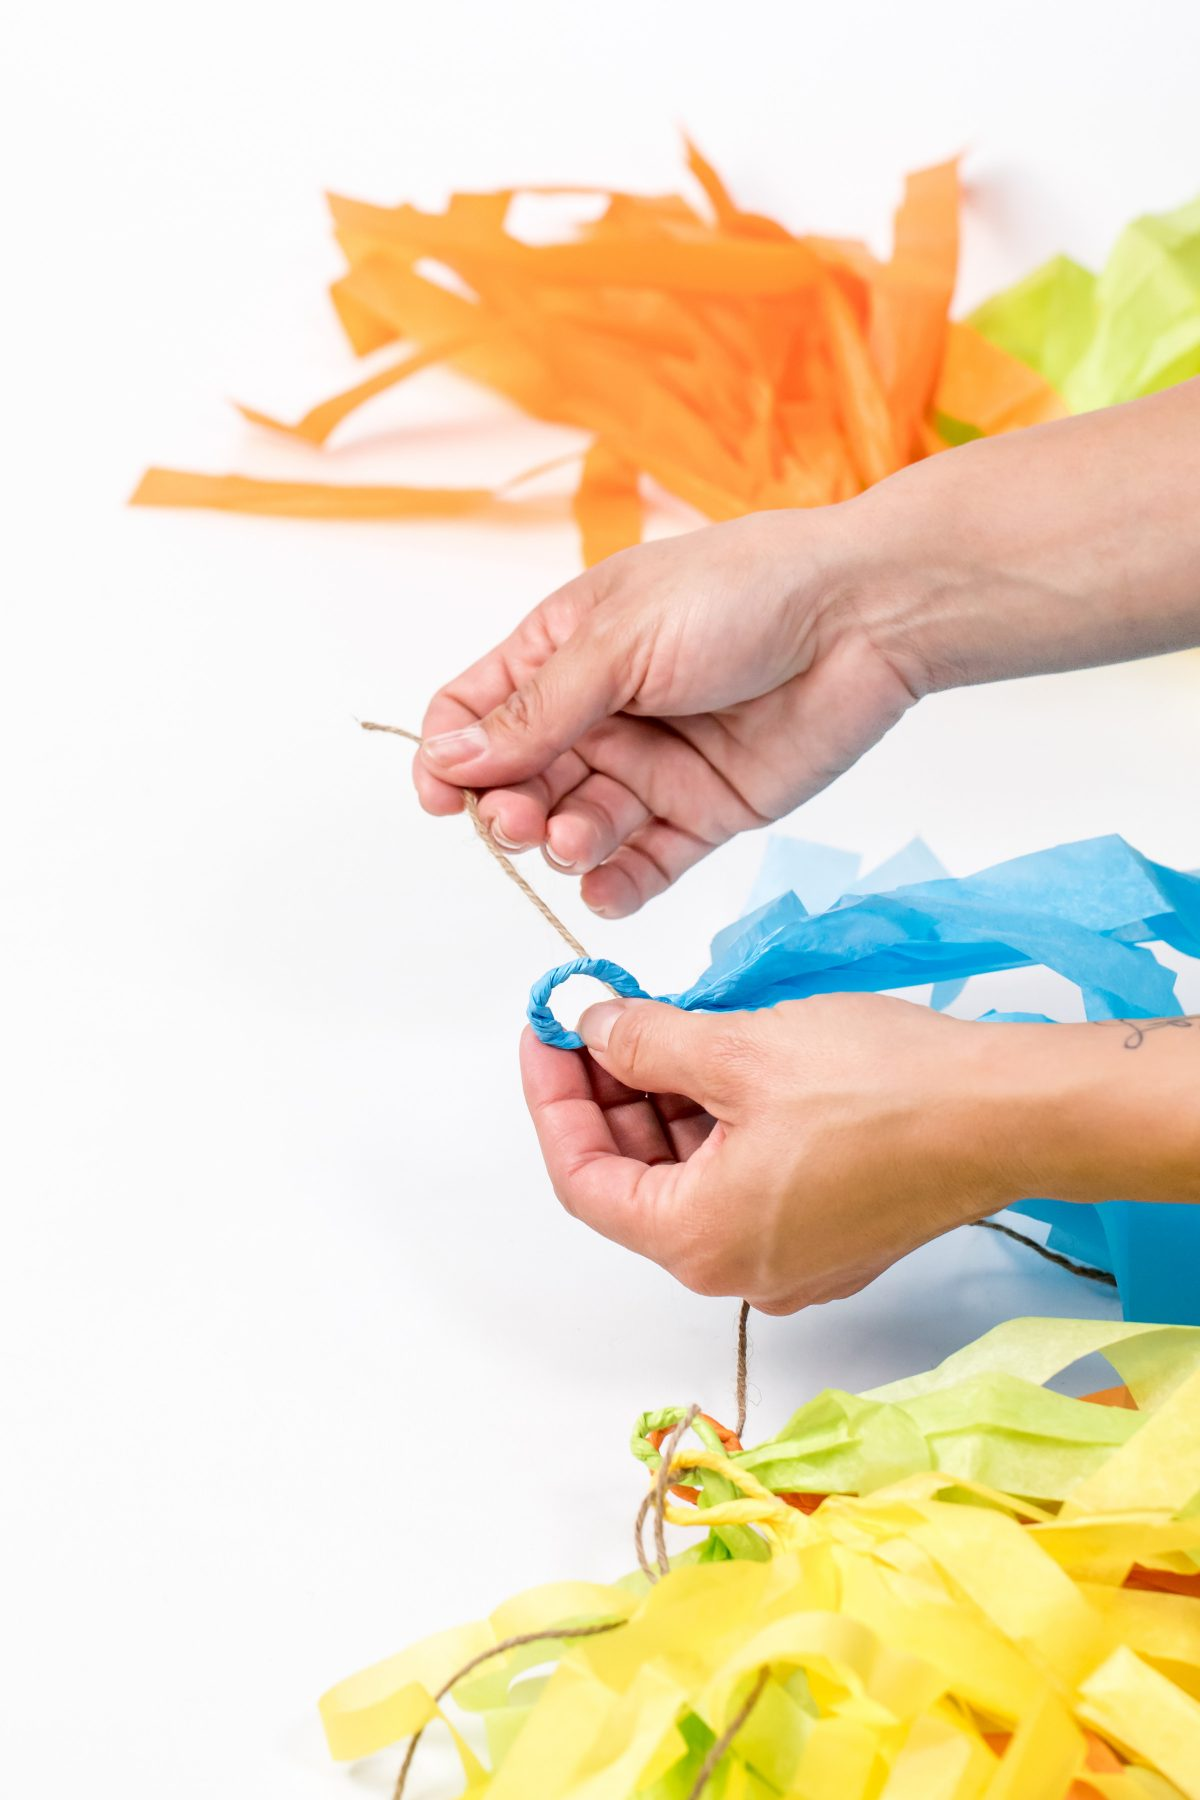 5D4B3542 - Father s Day Banner - adding hemp string through the blue tissue paper loop